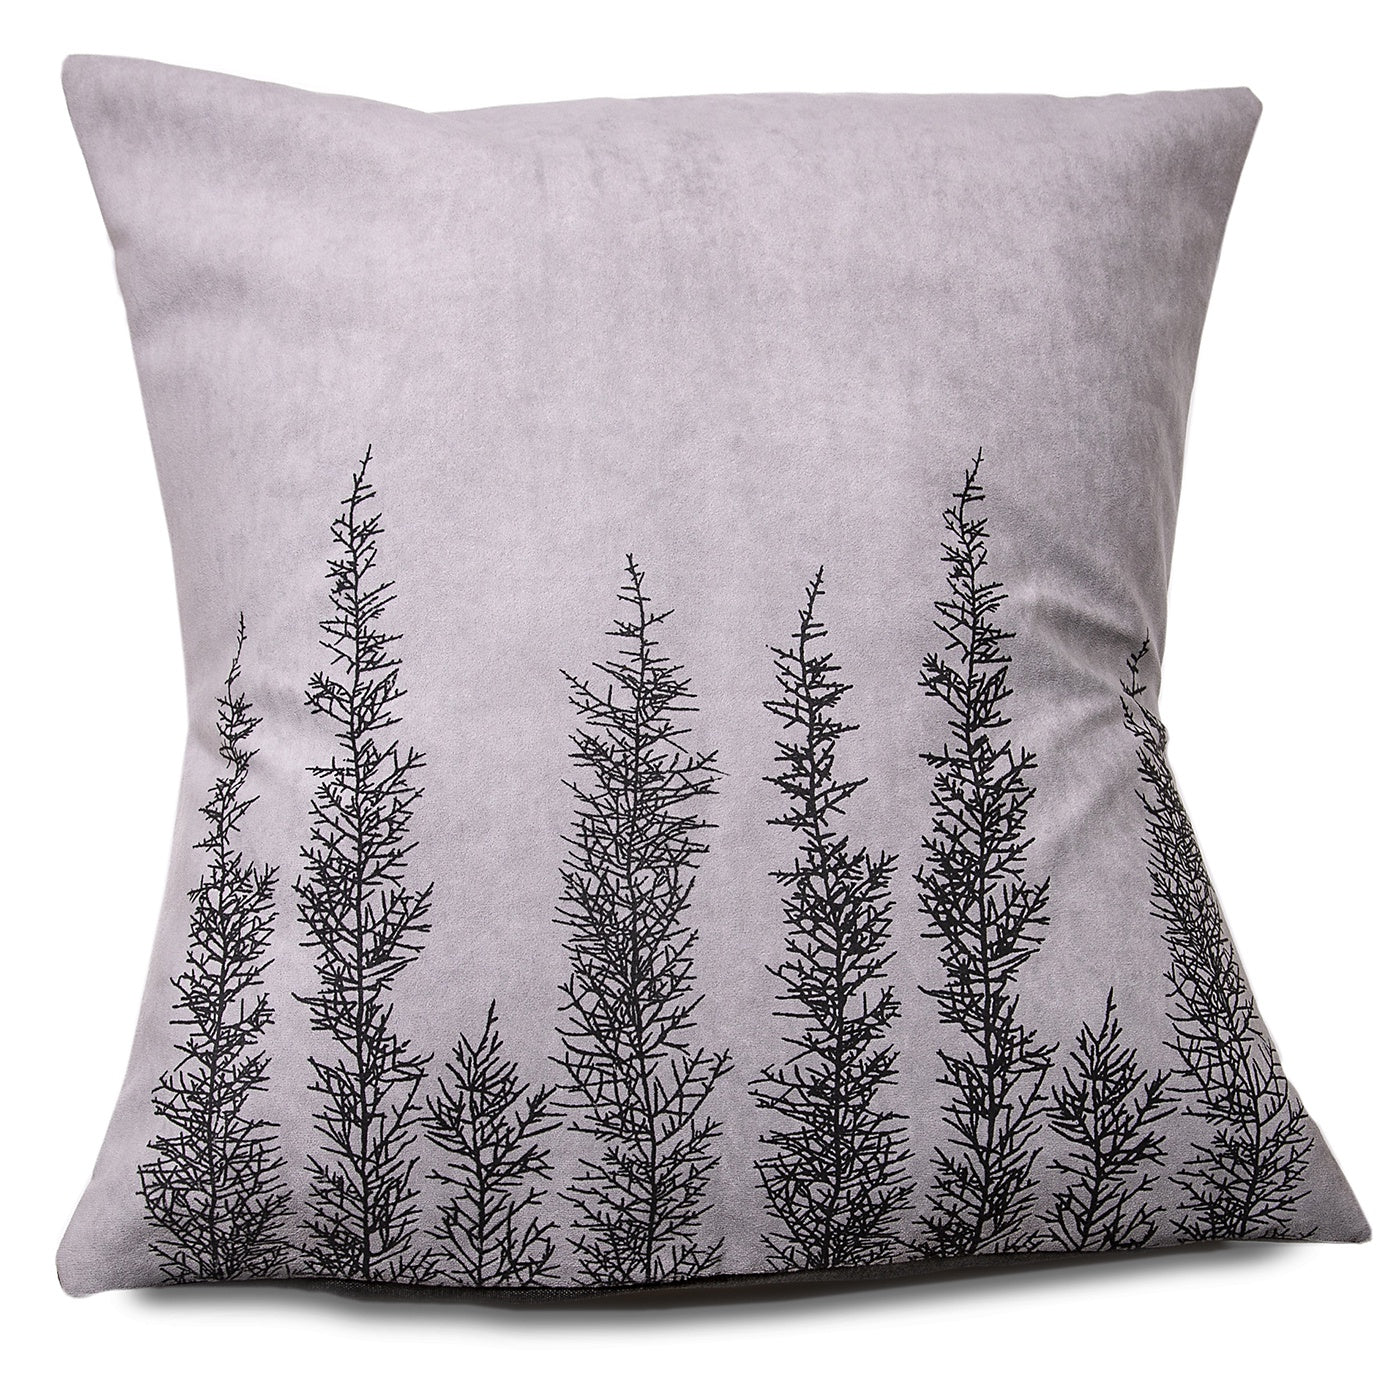 Stalley Textile Co. - Cushion Cover - Huon Pine - Black on Light Grey